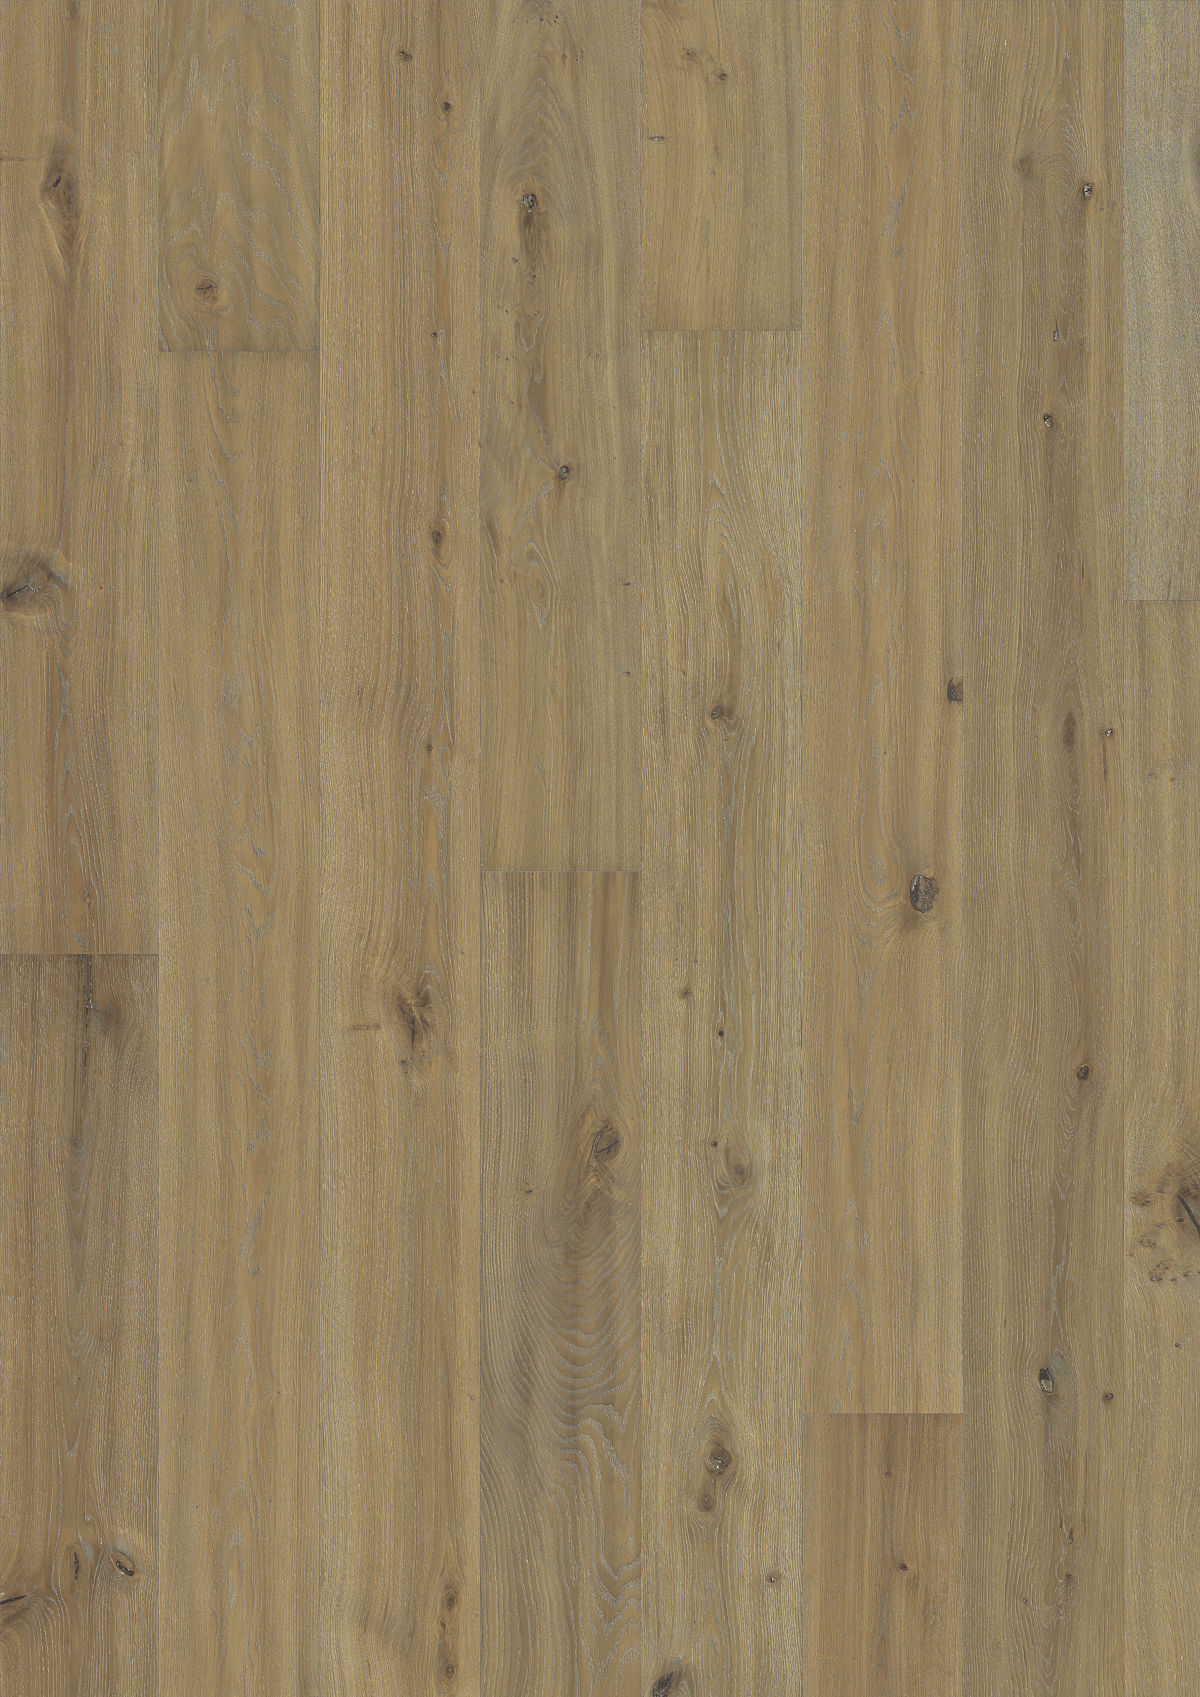 Kahrs oak more engineered wood flooring for Kahrs flooring